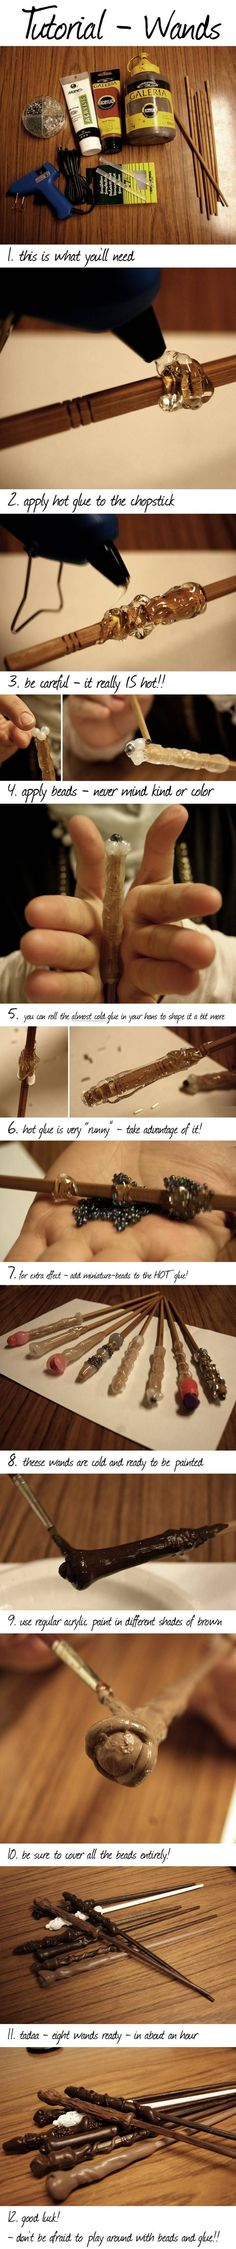 How to make wands with chopsticks, hot glue, beads, and paint. I know a a few people who would these.